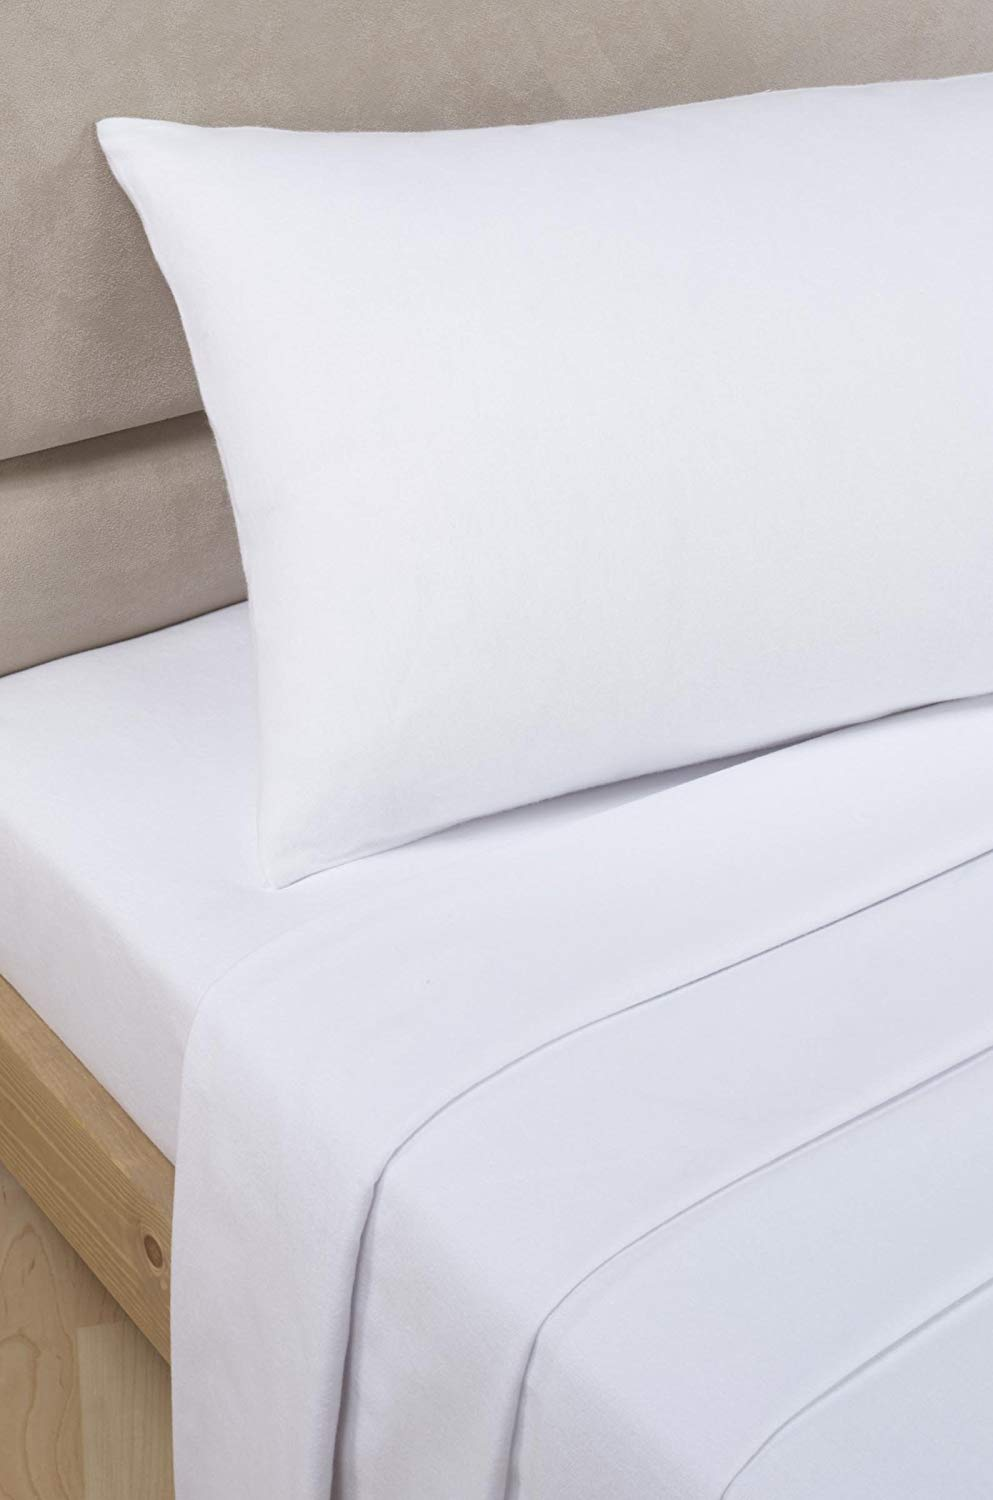 "Extra Deep (16""), 200 Thread Count Egyptian Cotton Fitted Bed Sheet, by Viceroybedding (Double, White)"